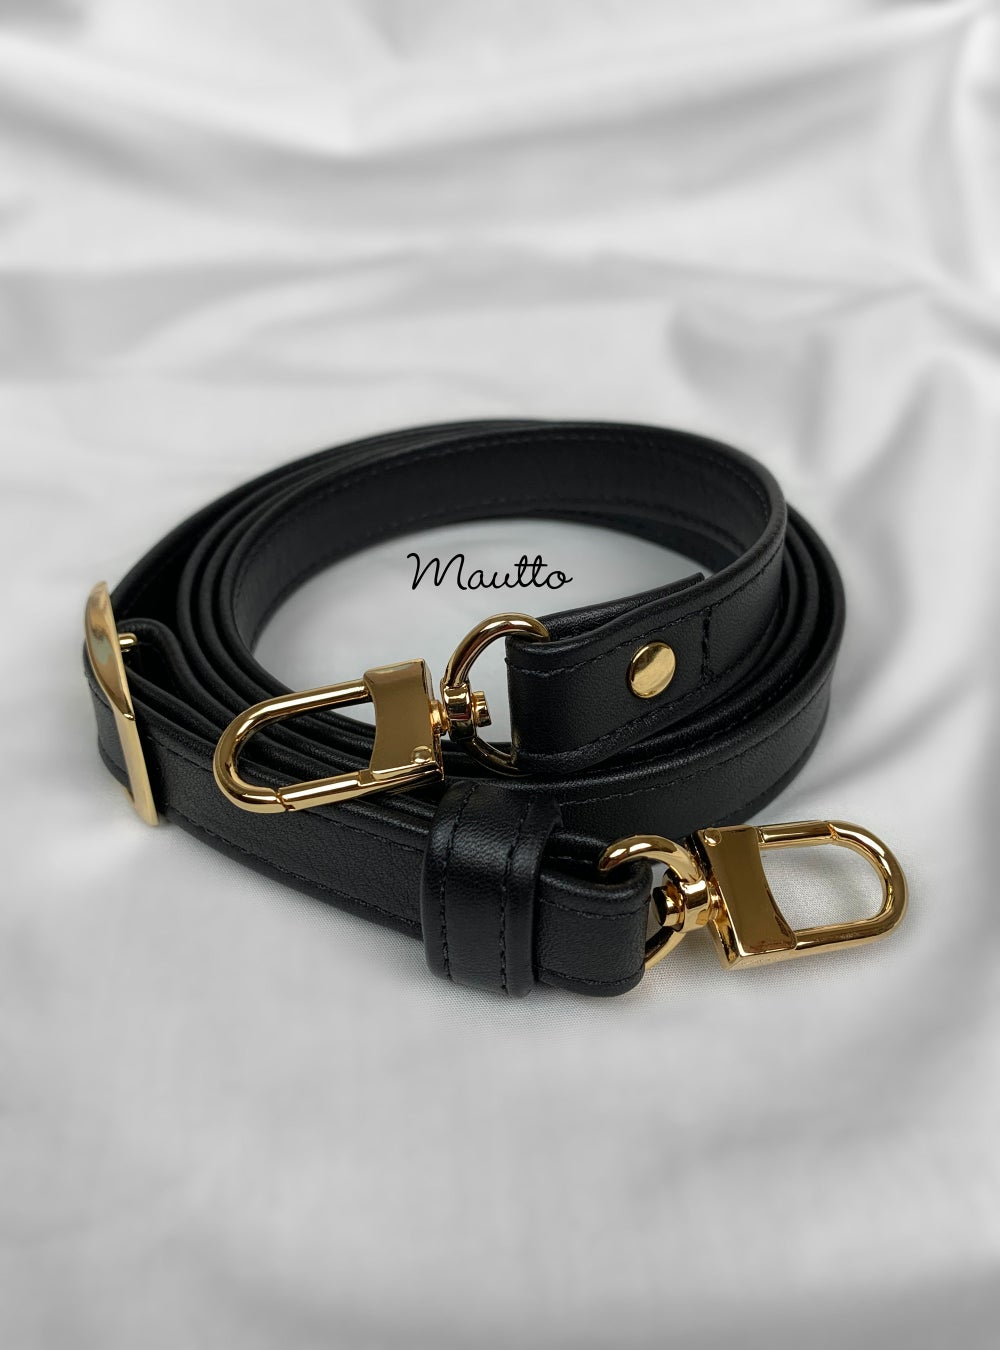 "Image of Black Leather Strap for Louis Vuitton (LV) Speedy, etc - 3/4"" Wide - Top Handle to Crossbody Lengths"